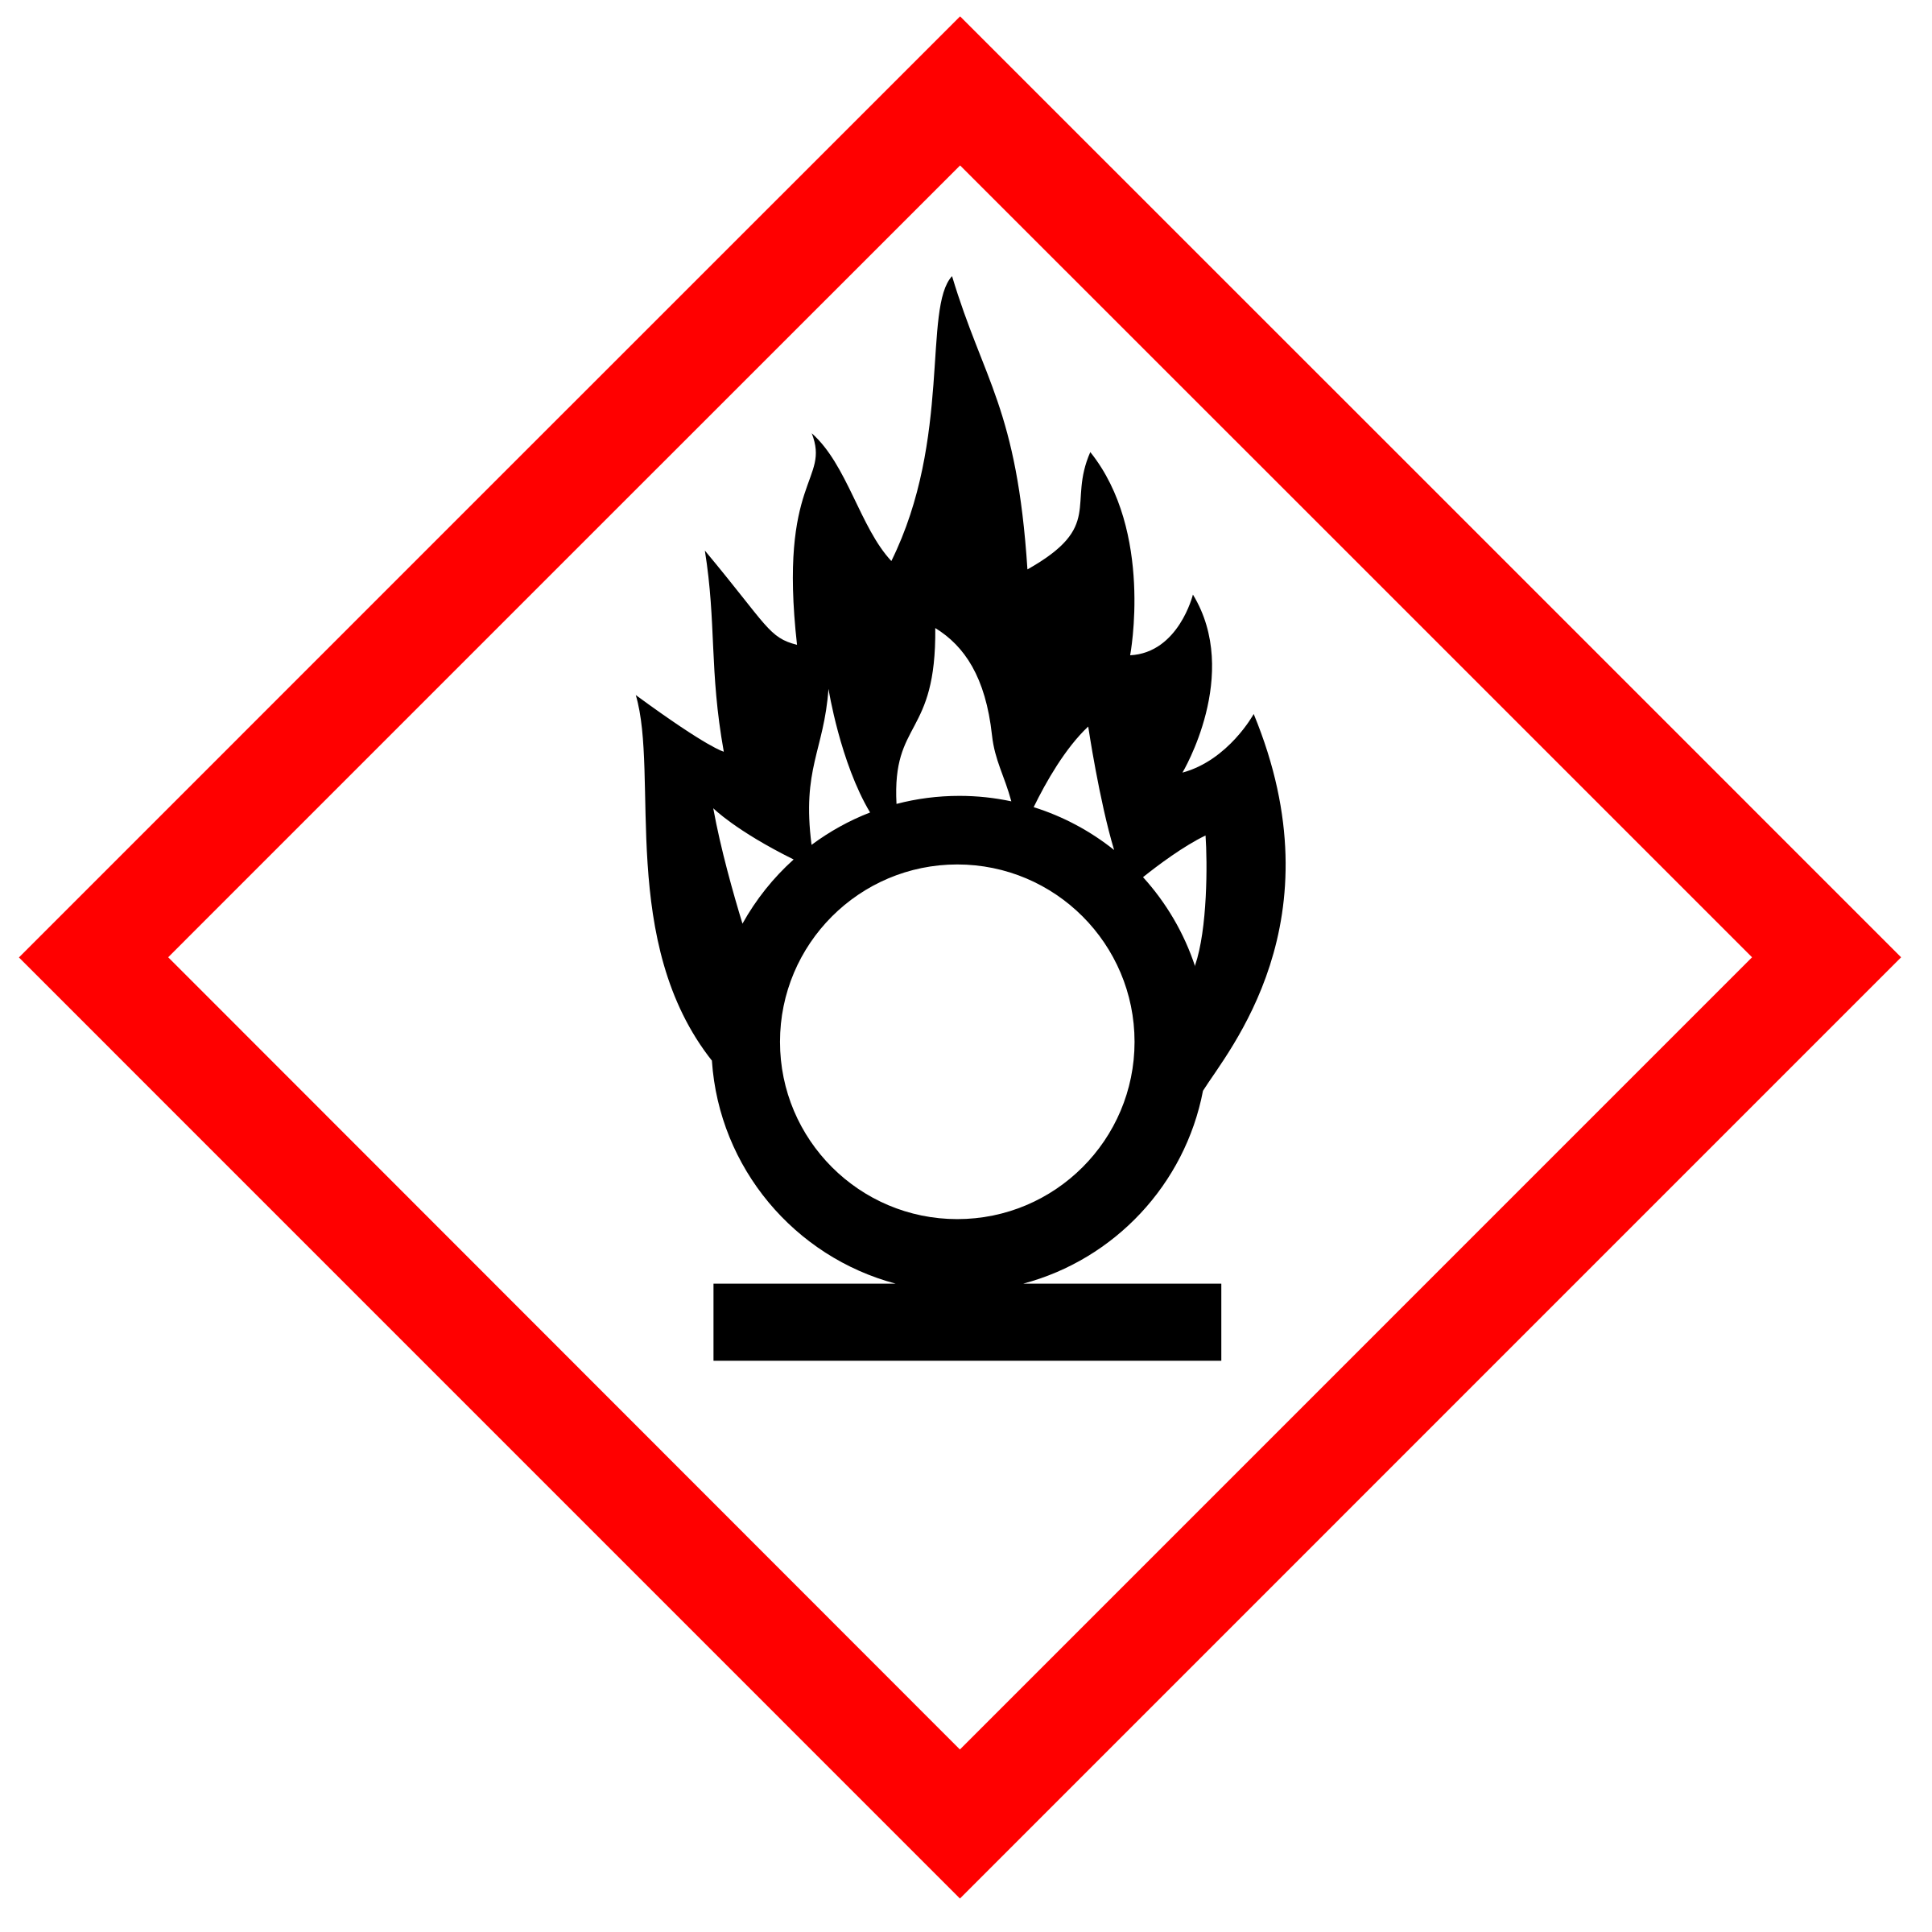 GHS pictogram for oxidizing substances by Juhele